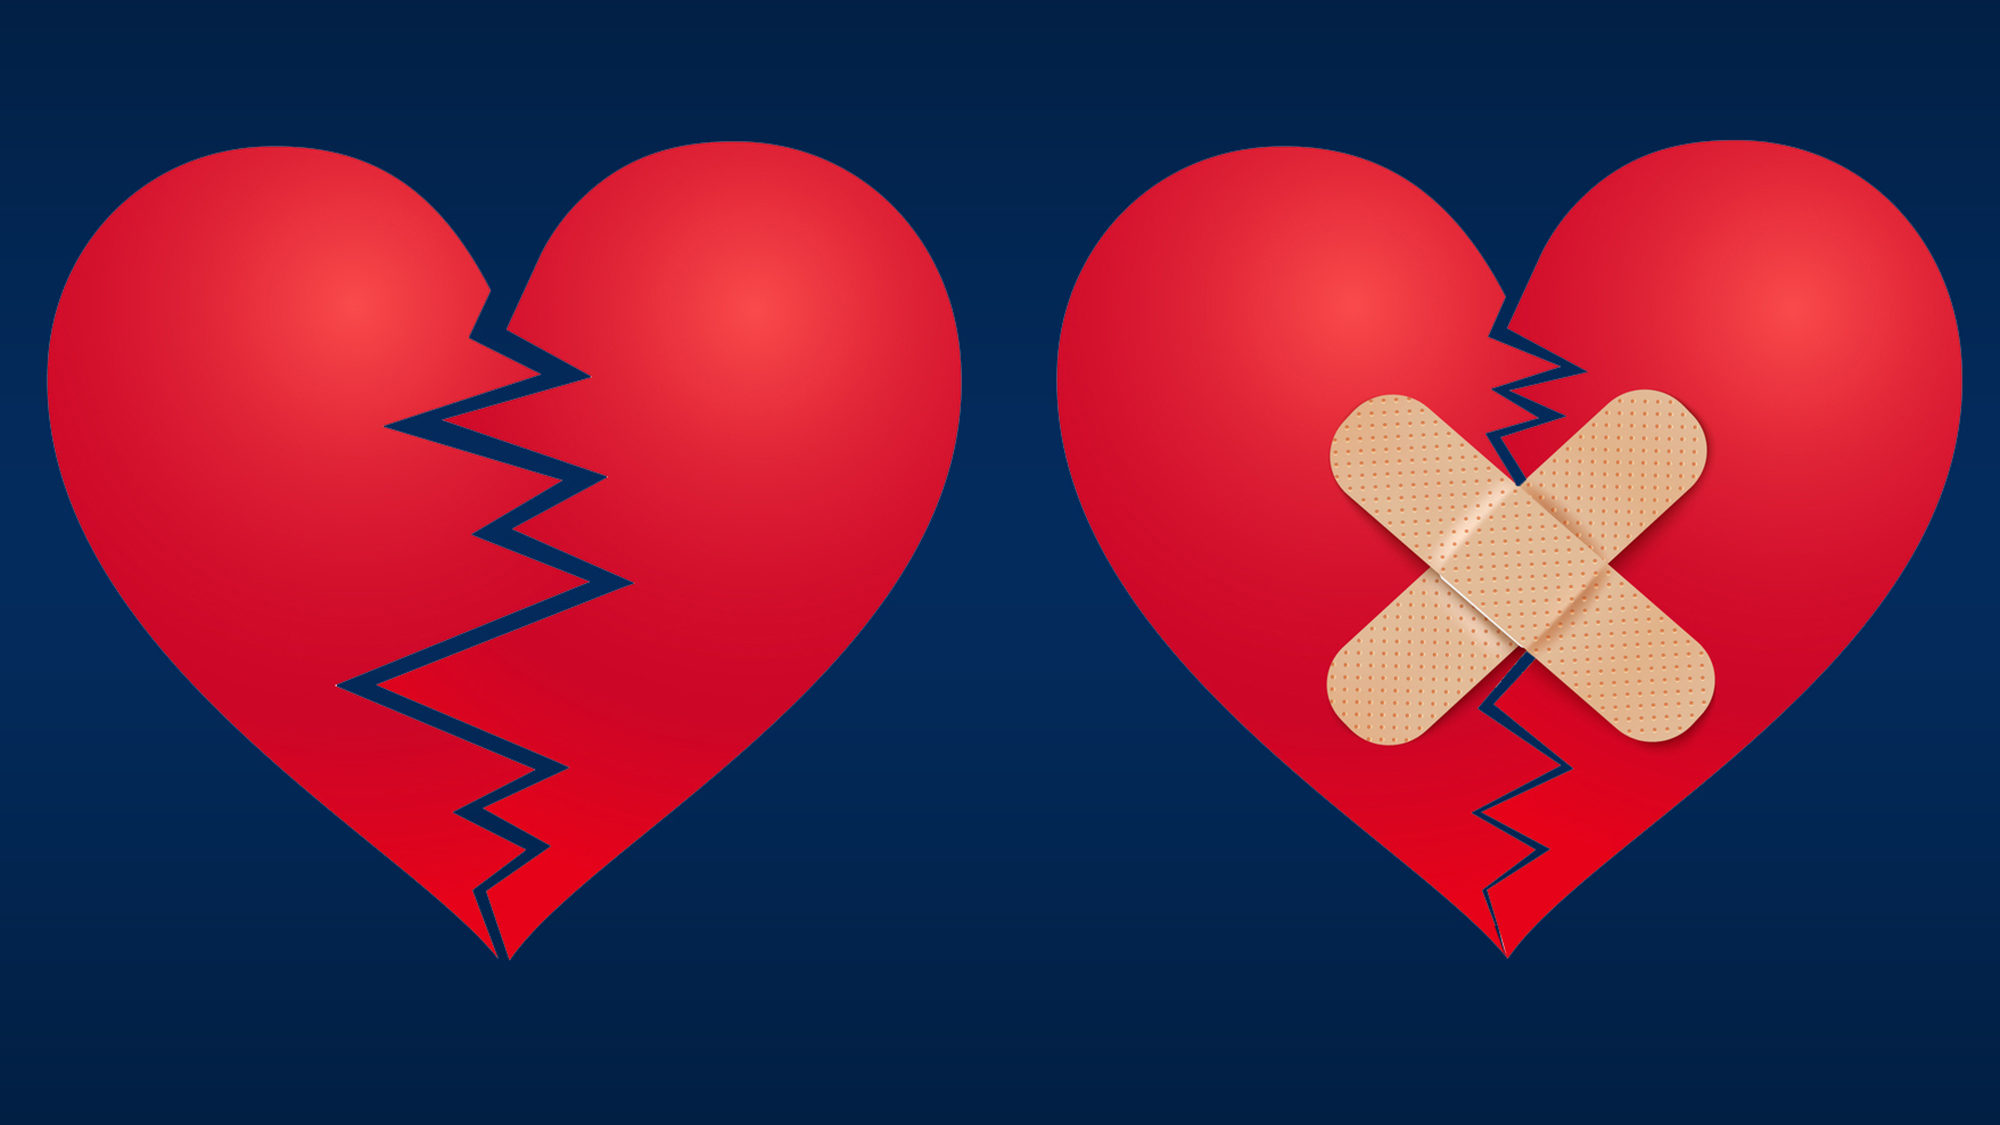 Two illustrations of hearts, one broken and the other broken with bandaids on it.